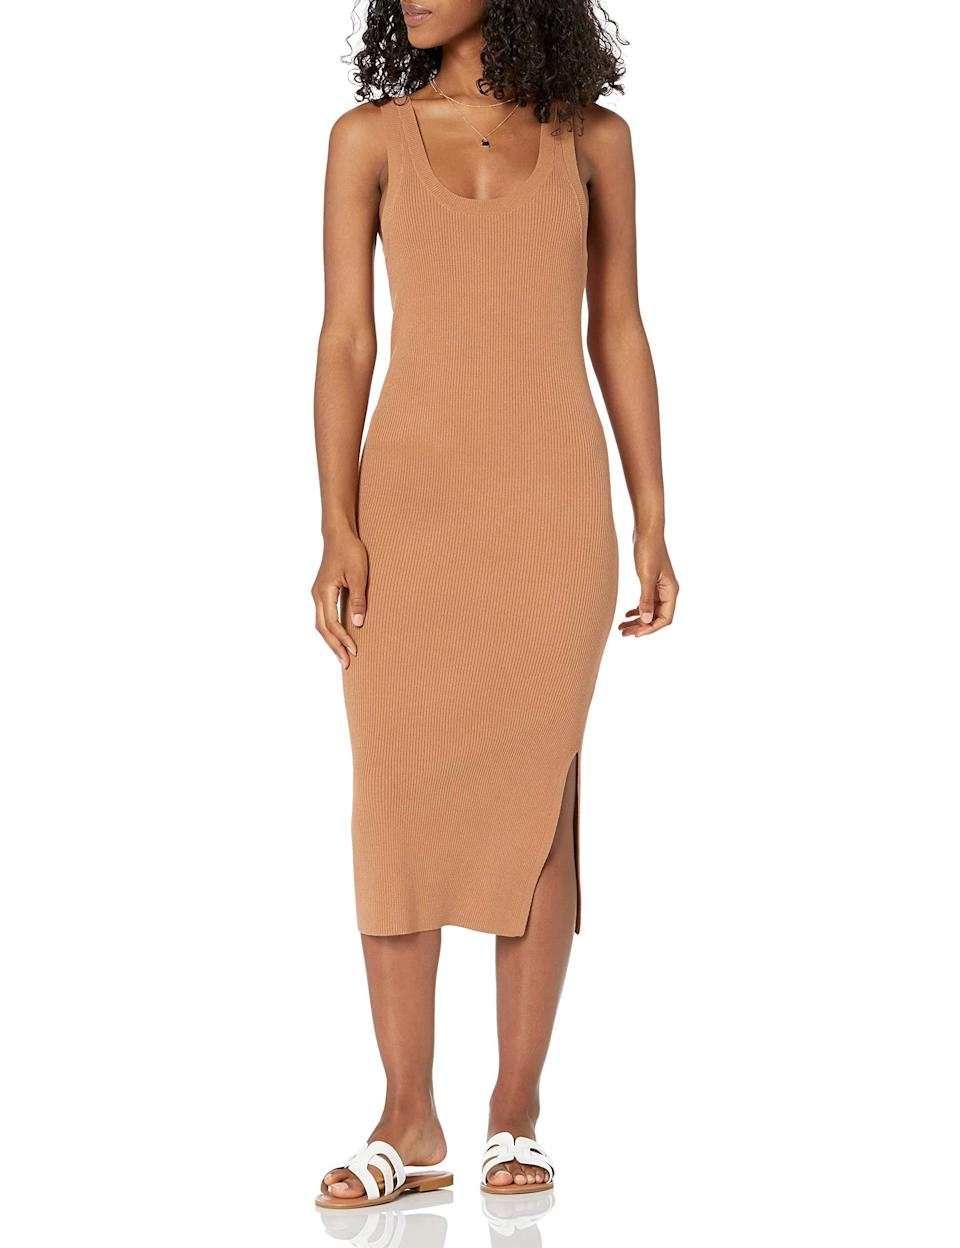 """<br><br><strong>The Drop</strong> Yasmin Rib Midi Sweater Tank Dress, $, available at <a href=""""https://amzn.to/33y9UQO"""" rel=""""nofollow noopener"""" target=""""_blank"""" data-ylk=""""slk:Amazon"""" class=""""link rapid-noclick-resp"""">Amazon</a>"""